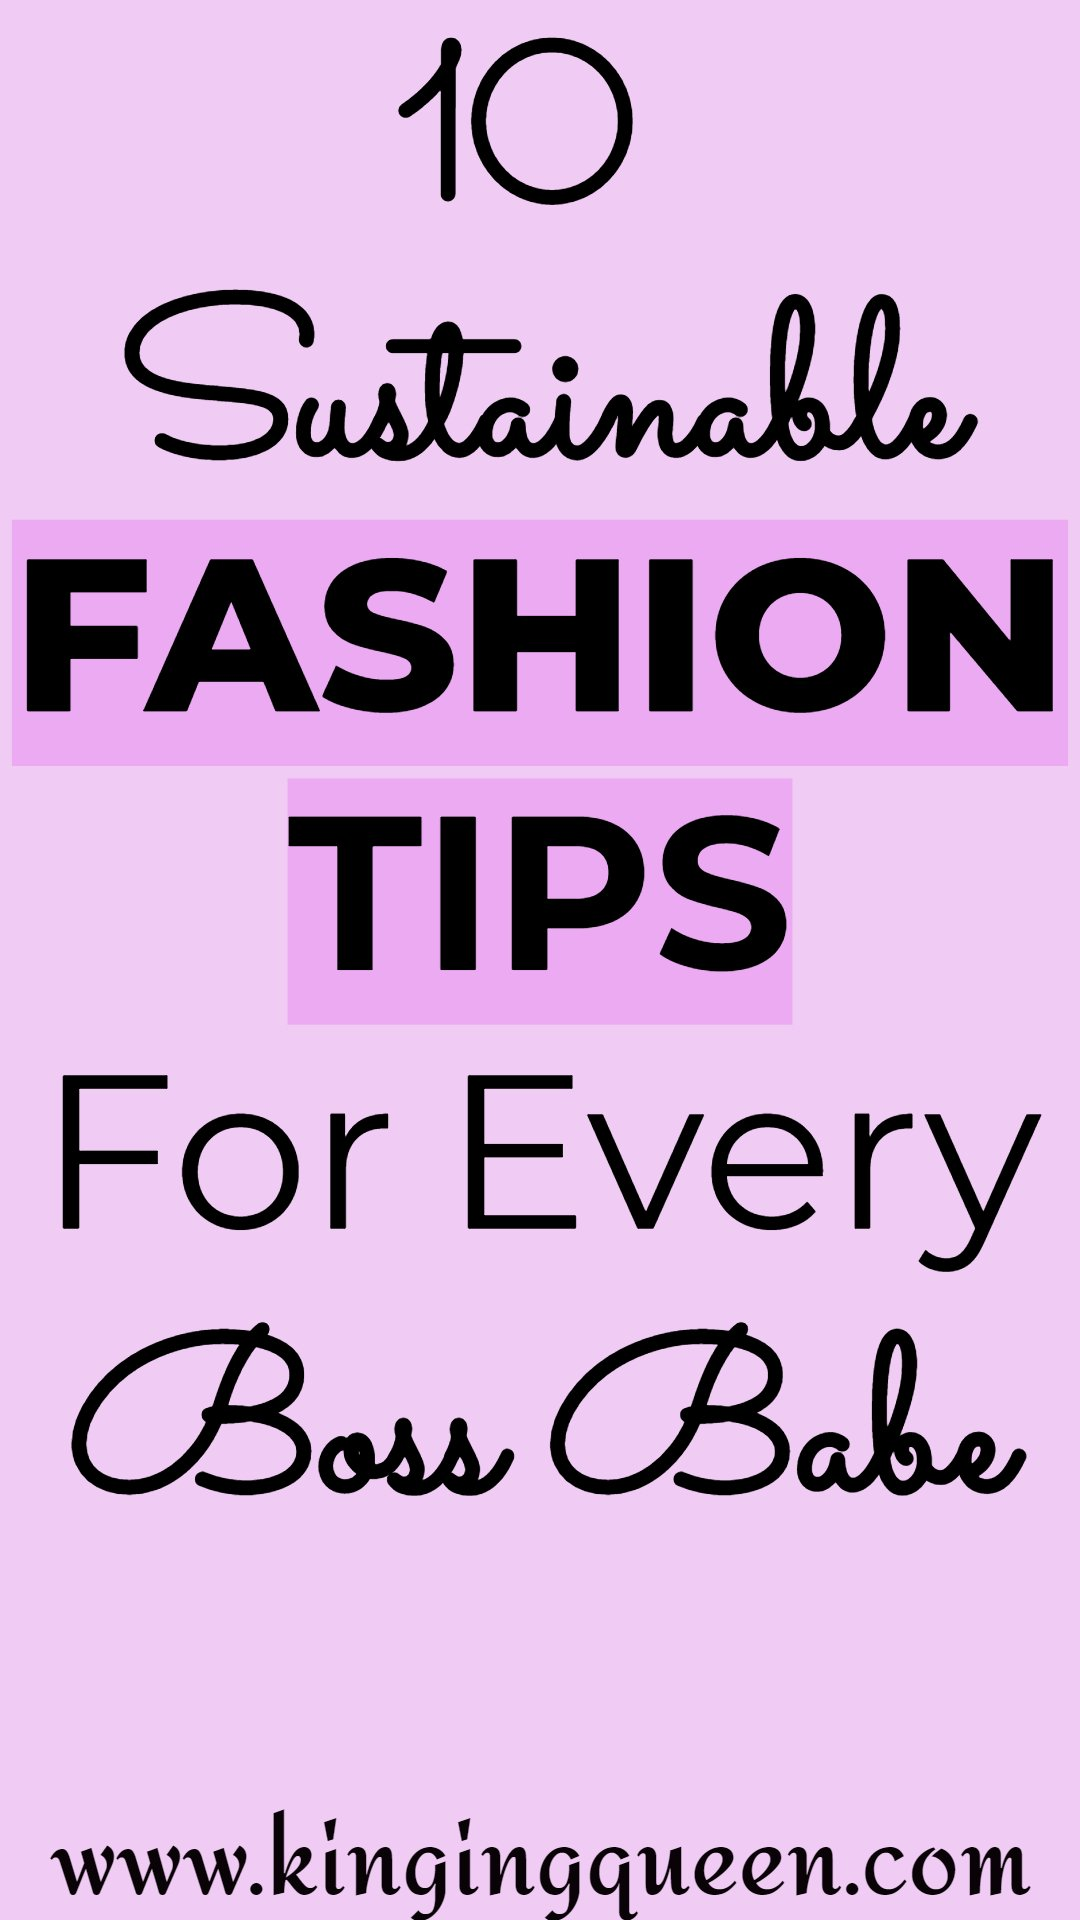 Graphic showing 10 sustainable fashion tips for every boss babe